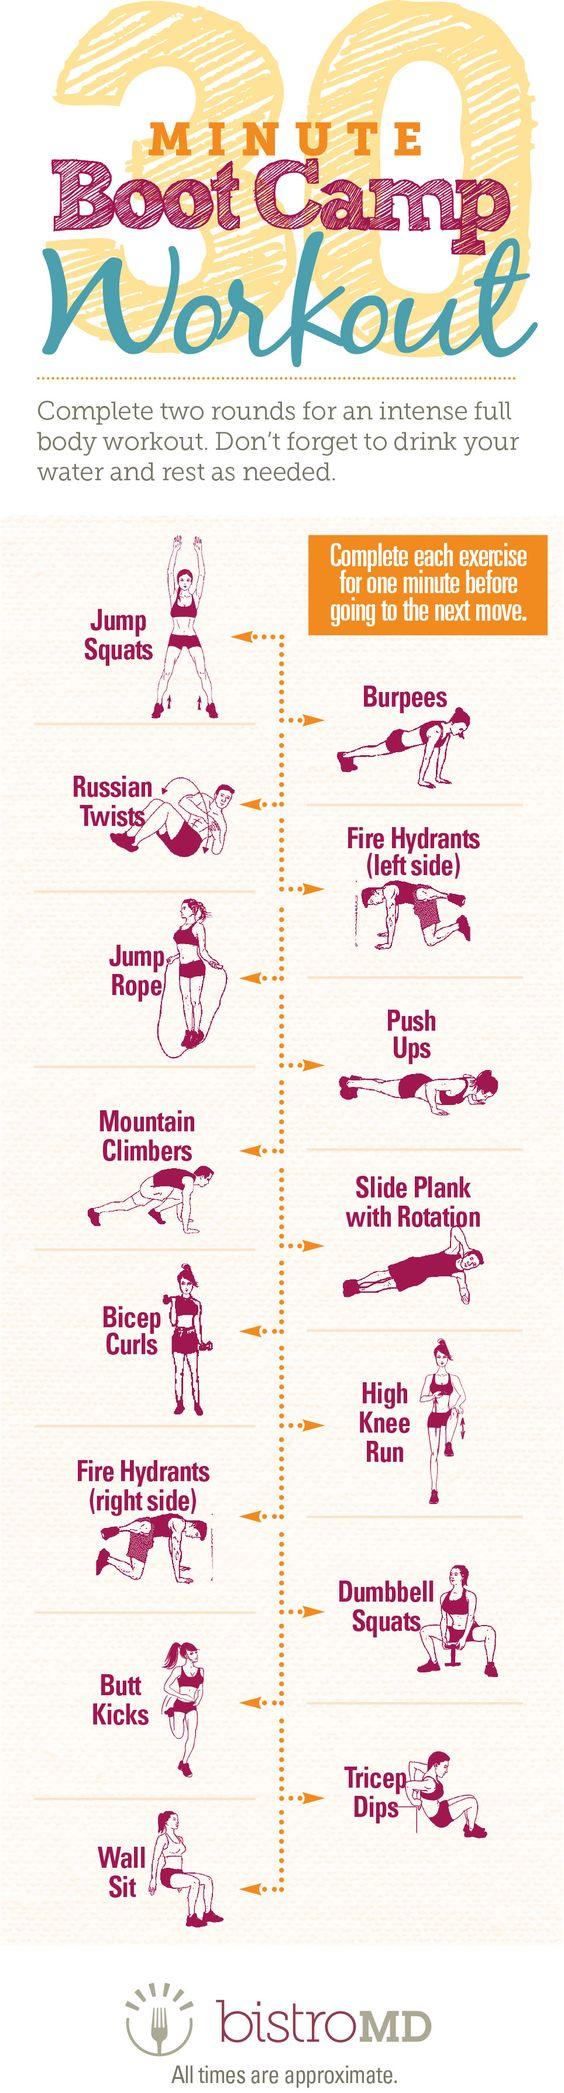 medium resolution of 30 minute boot camp workout